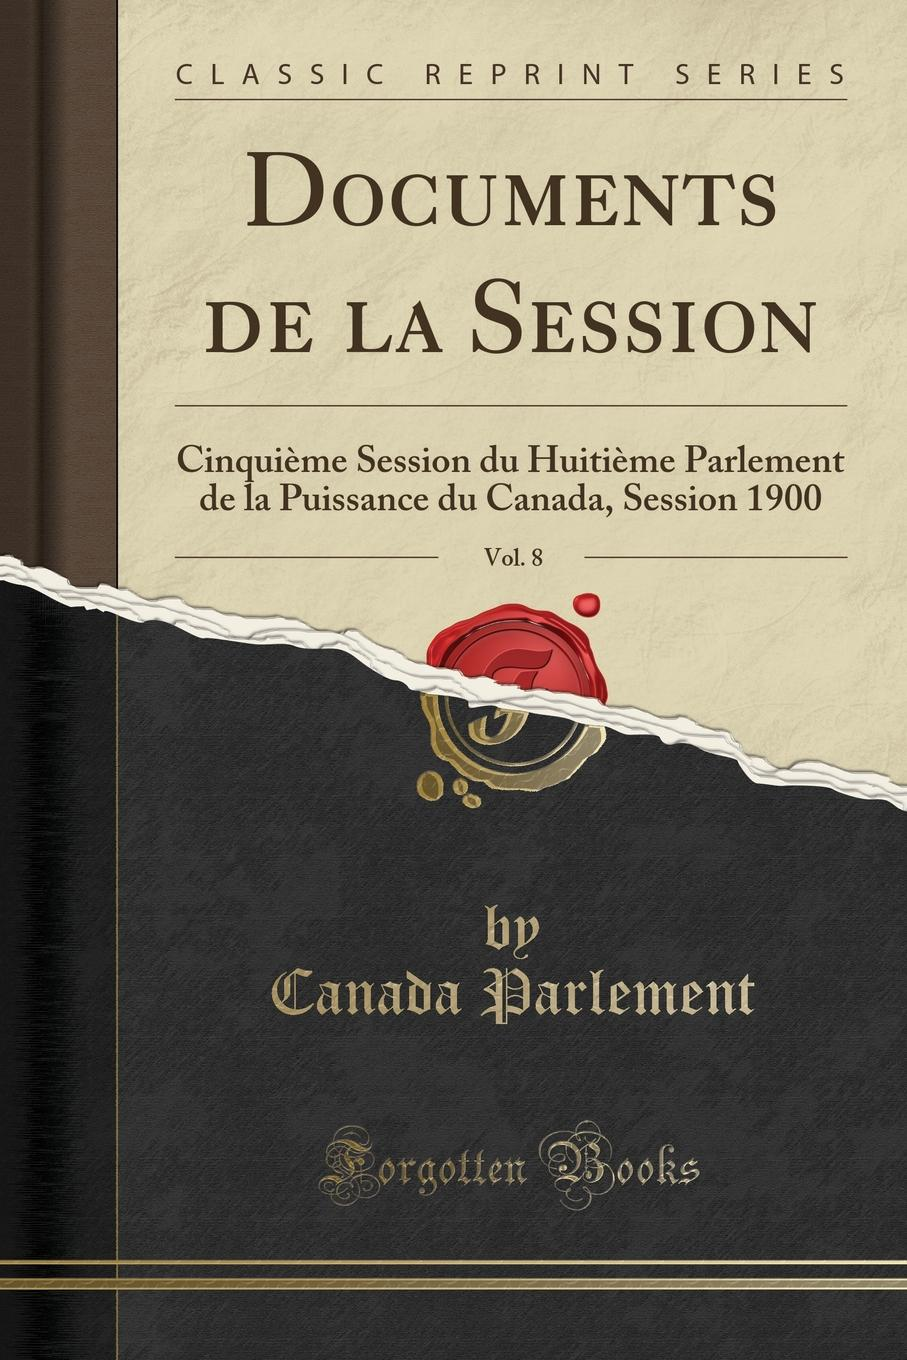 Canada Parlement Documents de la Session, Vol. 8. Cinquieme Session du Huitieme Parlement de la Puissance du Canada, Session 1900 (Classic Reprint)